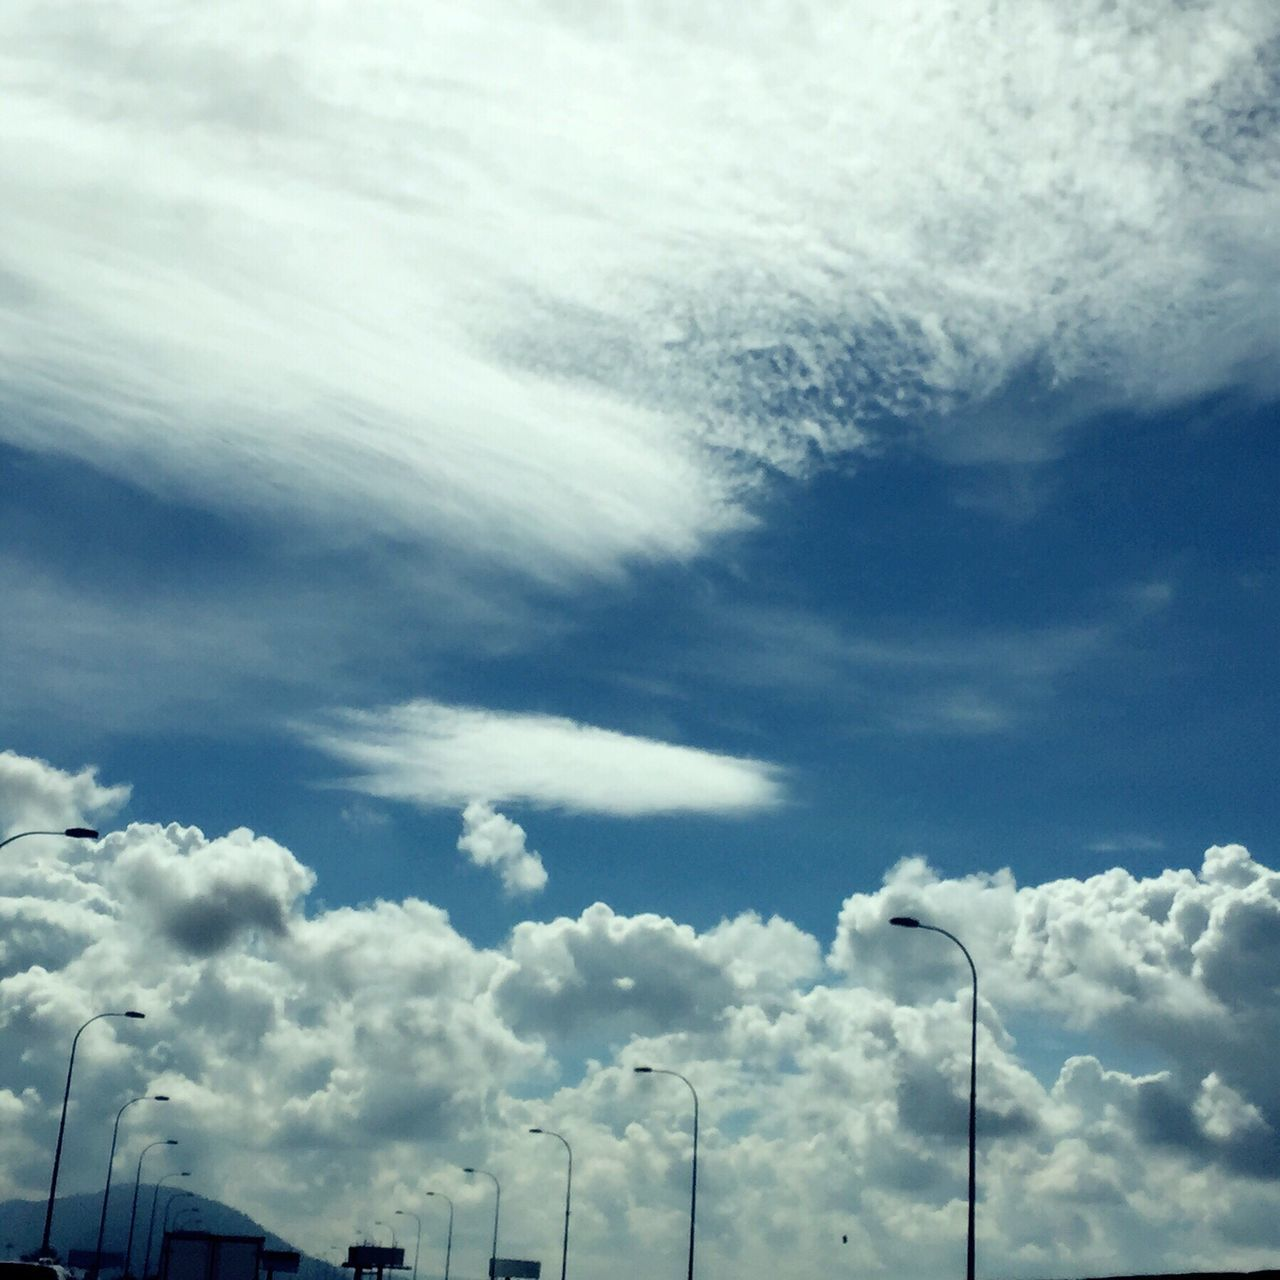 cloud - sky, sky, day, no people, low angle view, outdoors, nature